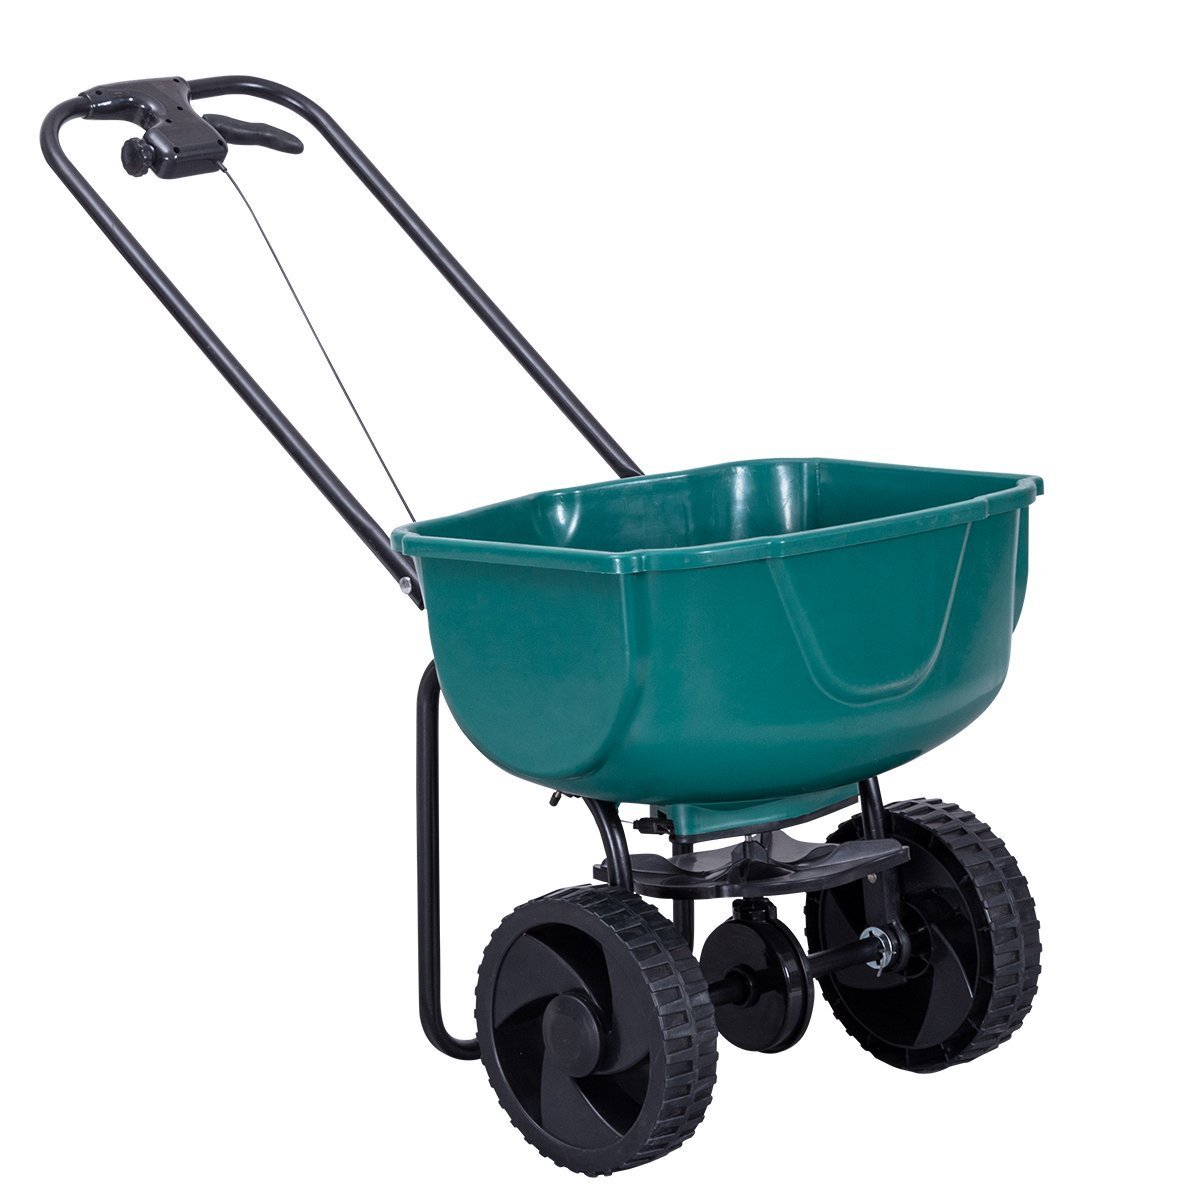 Goplus Broadcast Spreader 44Lbs Lawn Garden Seeder Walk-Behind Grass Fertilizer (Green) by Goplus